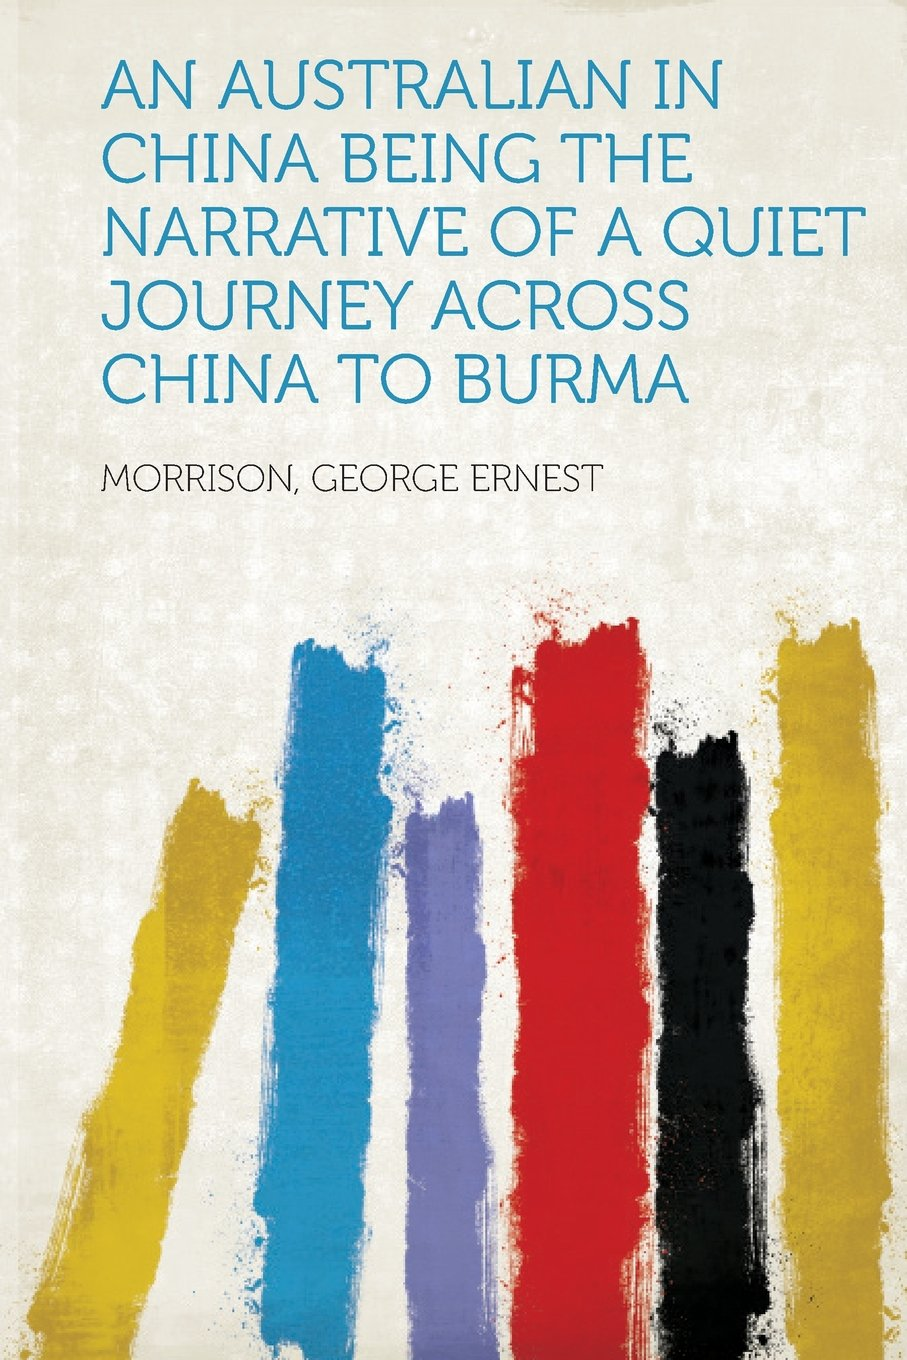 Read Online An Australian in China Being the Narrative of a Quiet Journey Across China to Burma PDF